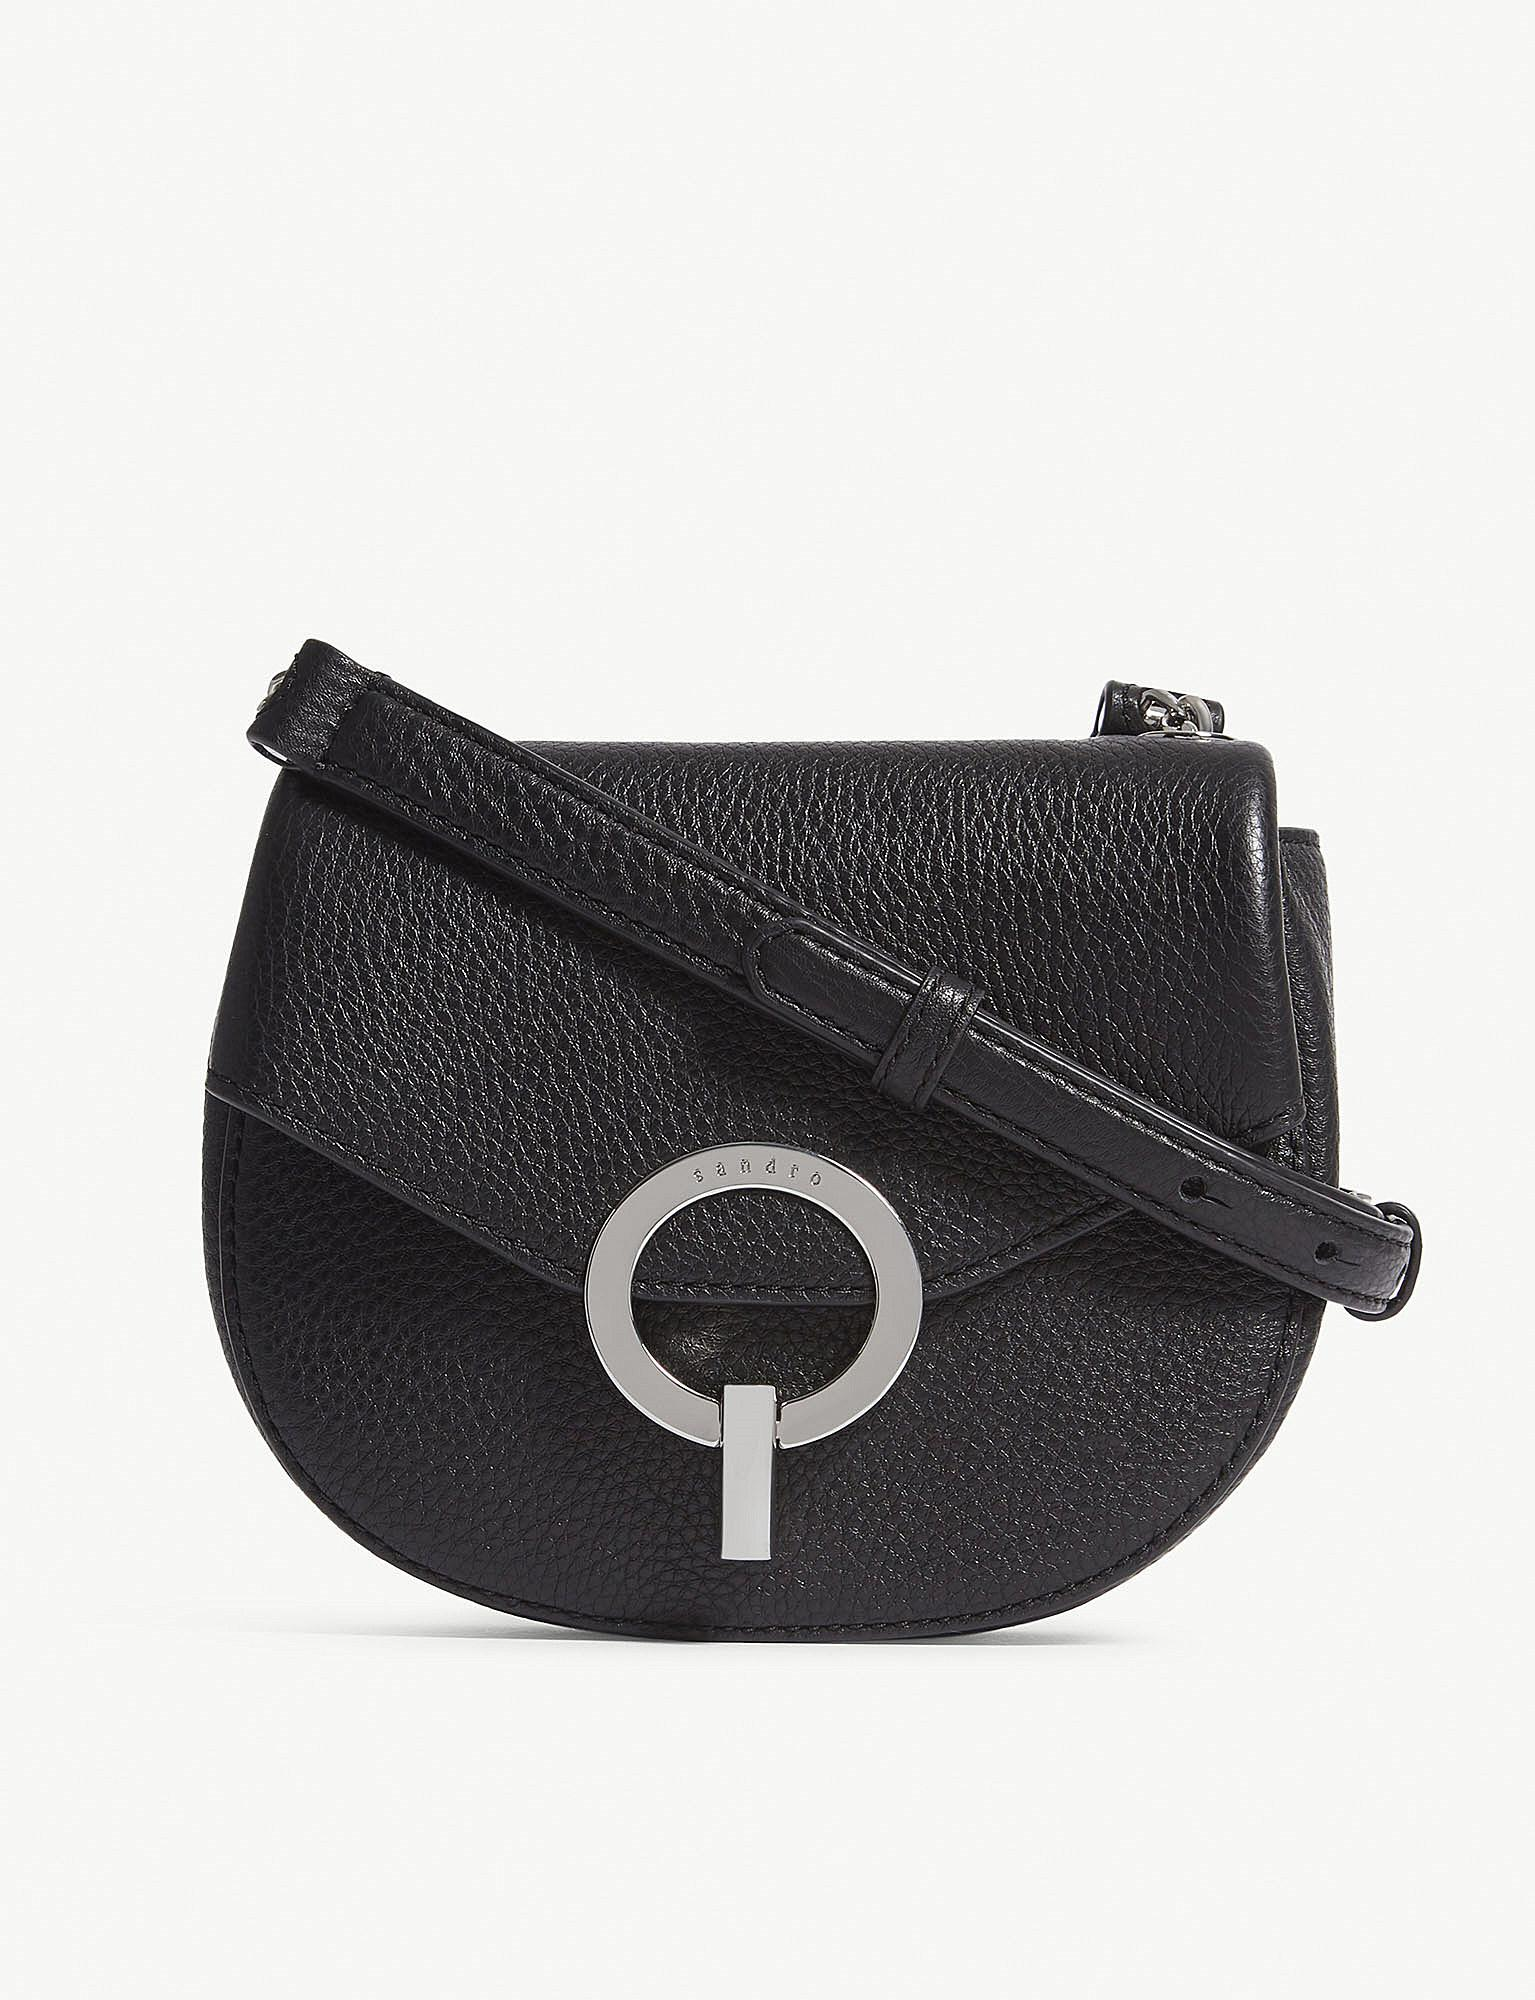 283db29a9b30 Lyst - Sandro Red Pepita Grained Leather Shoulder Bag in Black